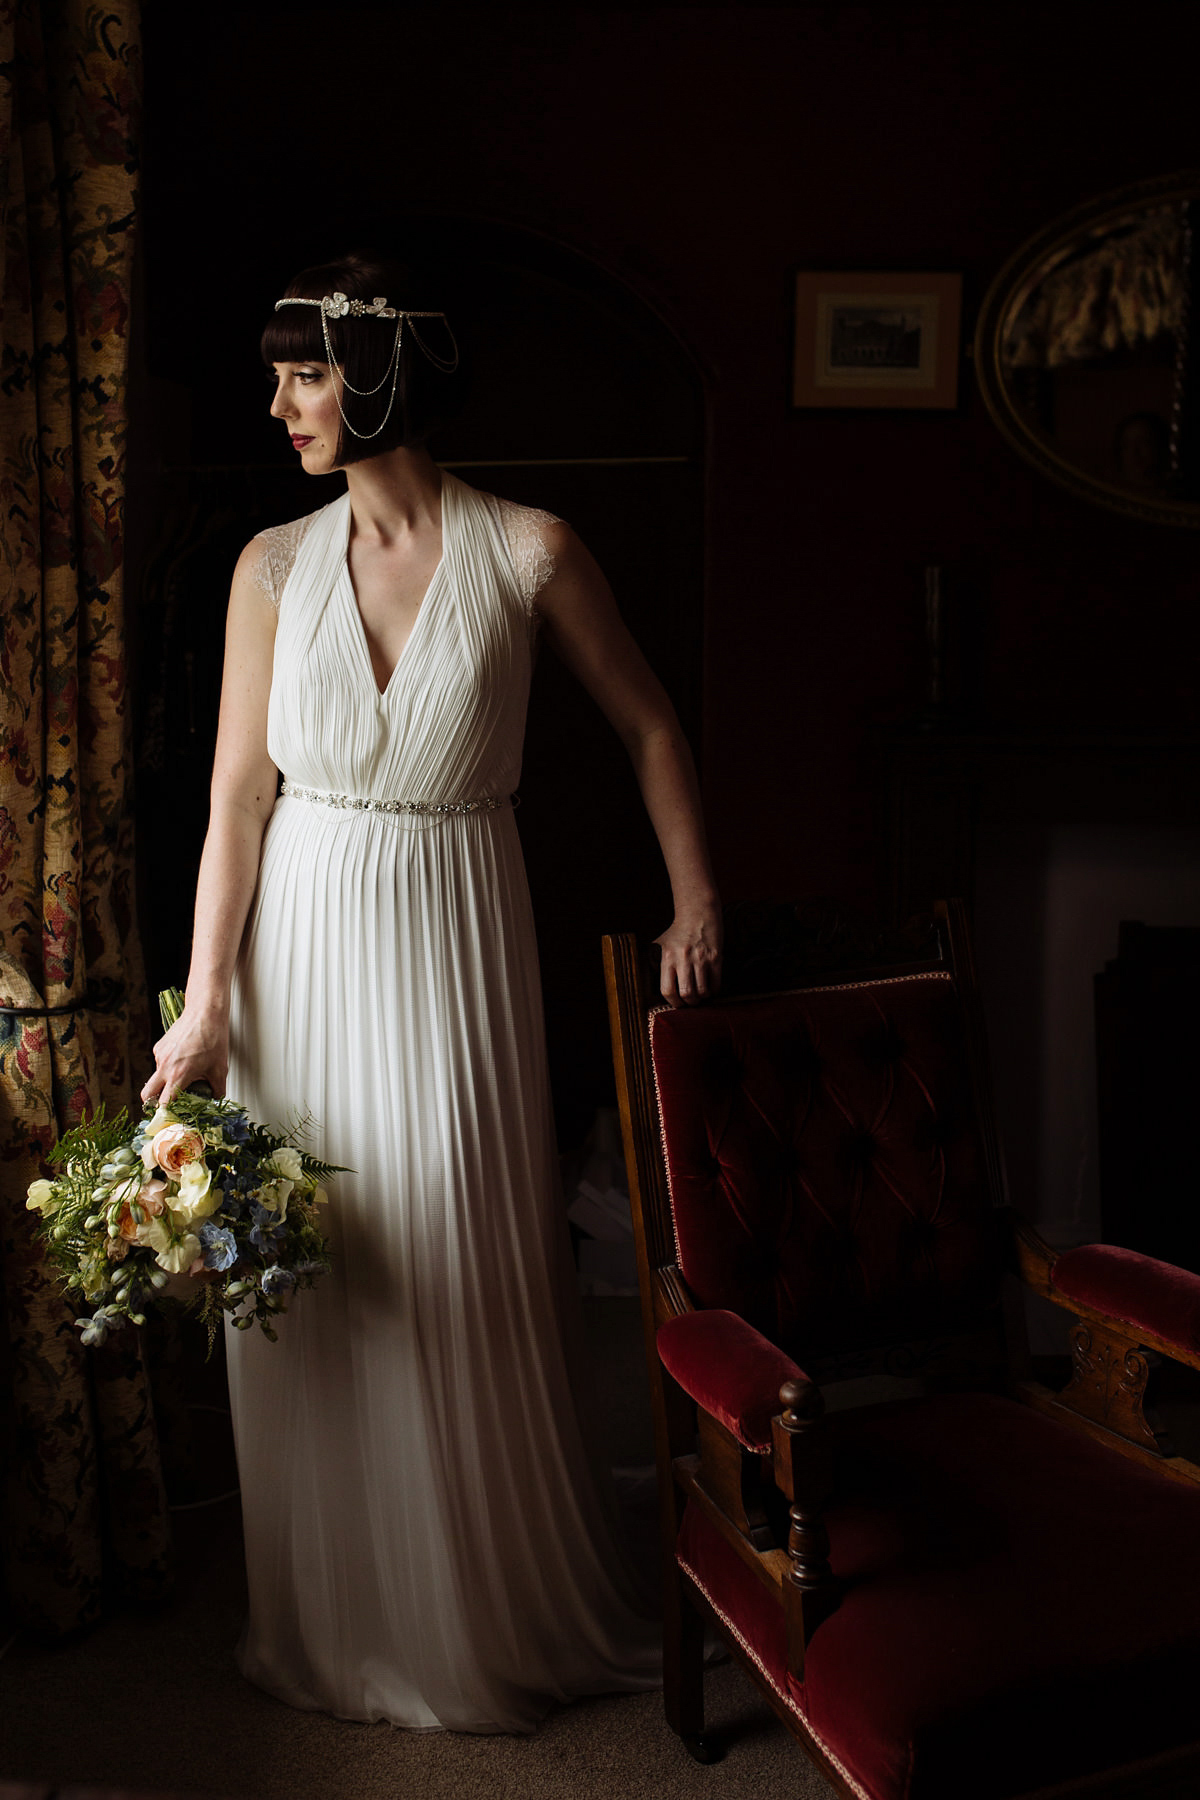 A 1920's Inspired Bride and Maids in Blue for a Classy and Elegant Spring Wedding